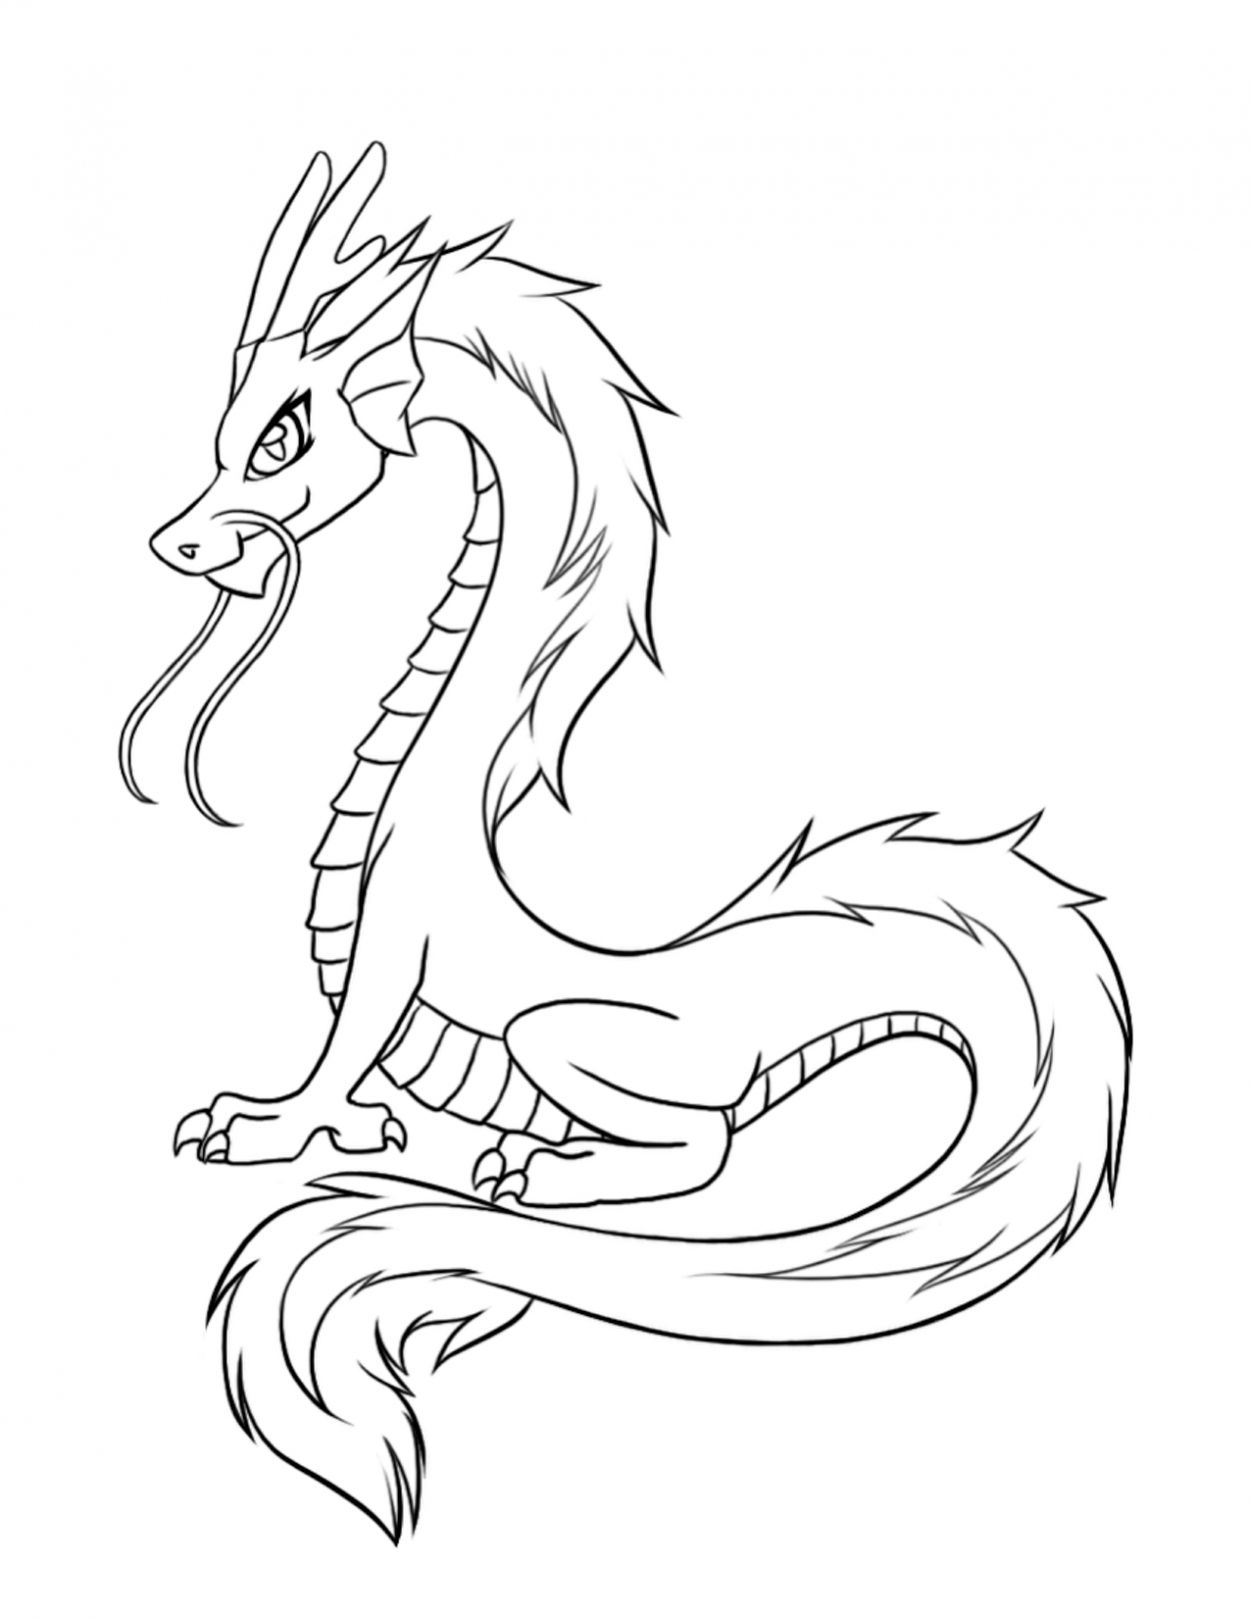 Simplified Chinese Dragon. From http://printncolor.coolphotos.in ...